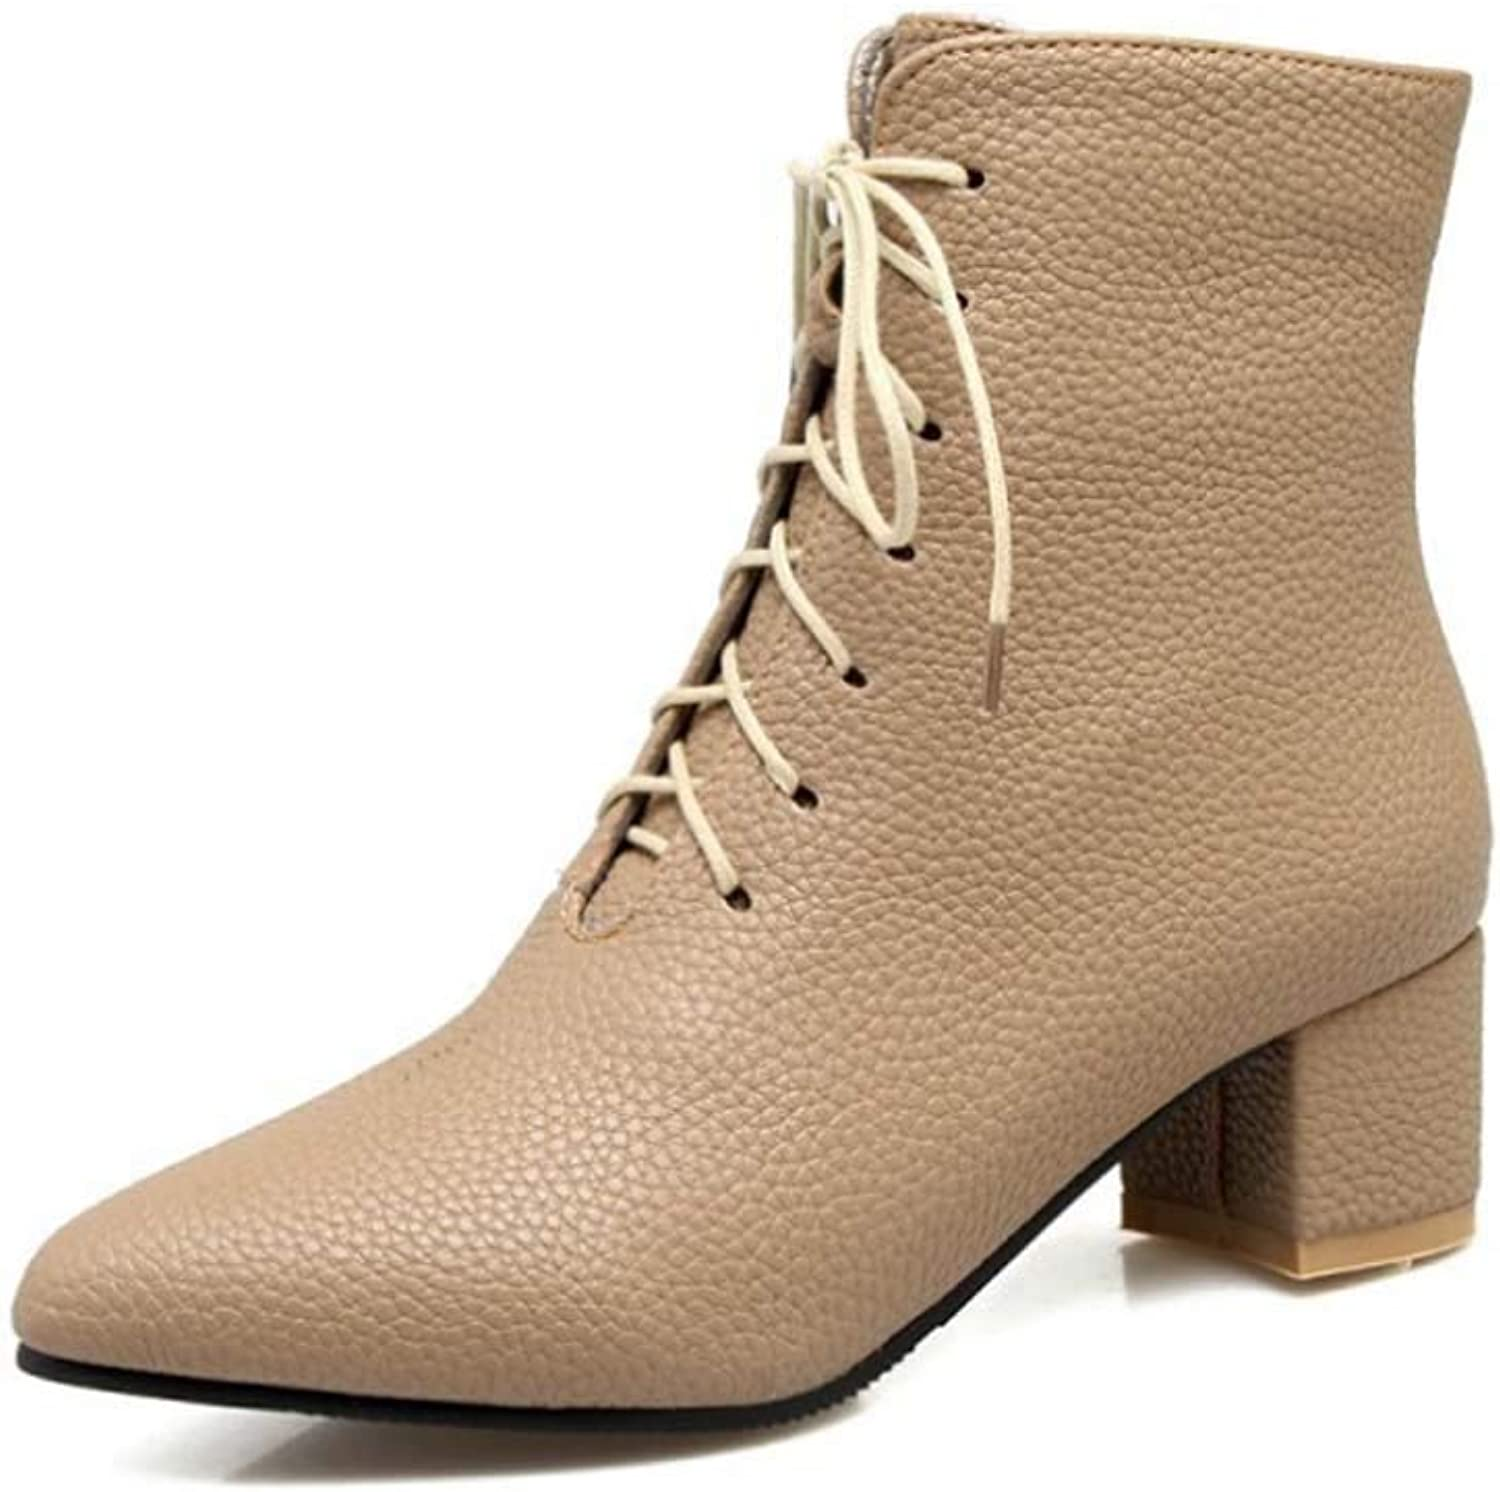 Women Faux Leather Boots Winter Thick Heel Ankle Boot Heel Pointed Boots Lace Up High Block Heel Work Vintage Brogue Fashion Ankle shoes